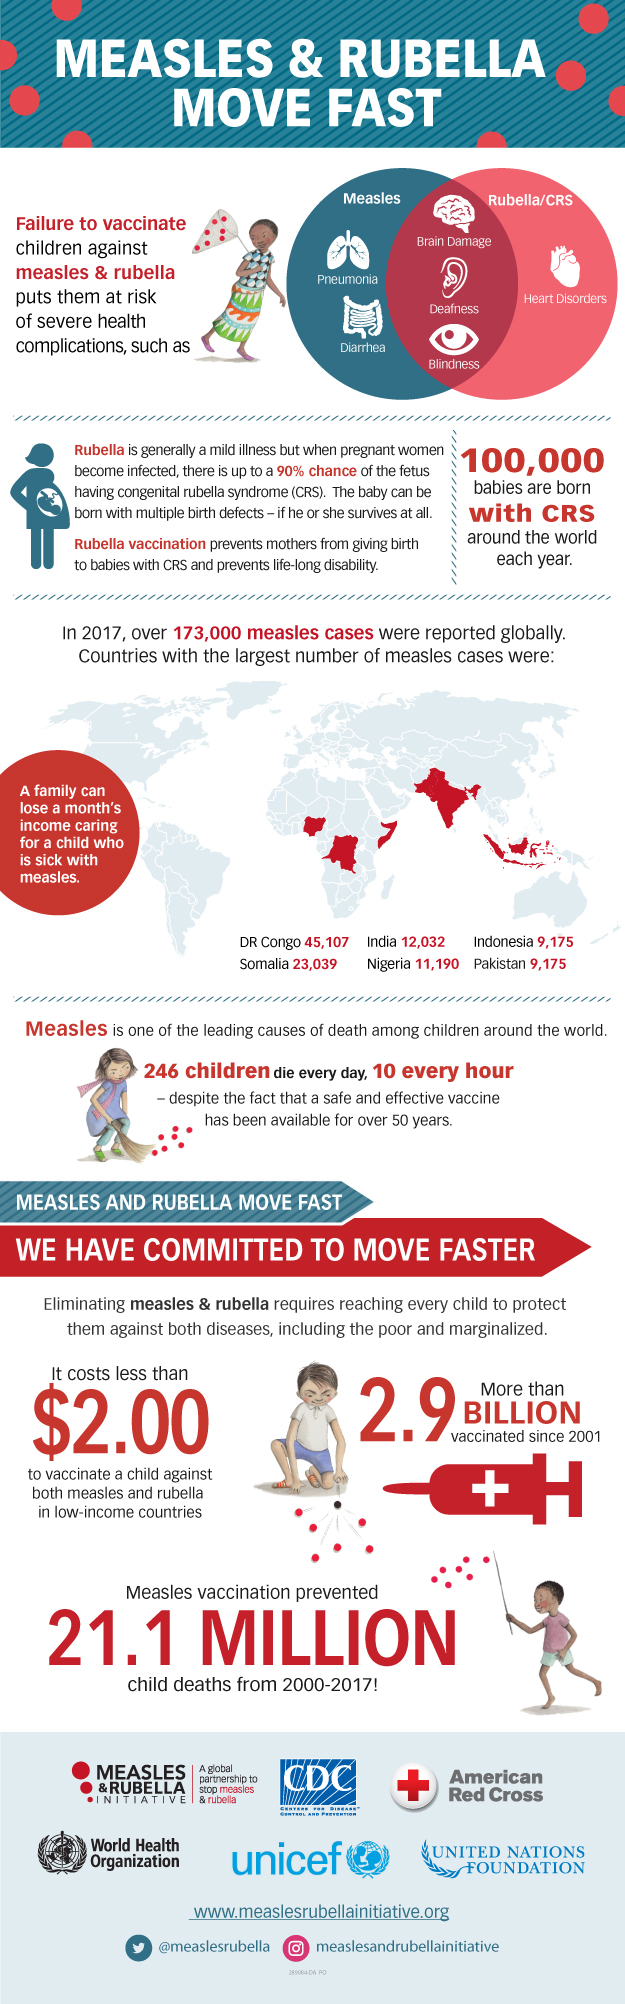 Measles & Rubella move Fast - Infographic